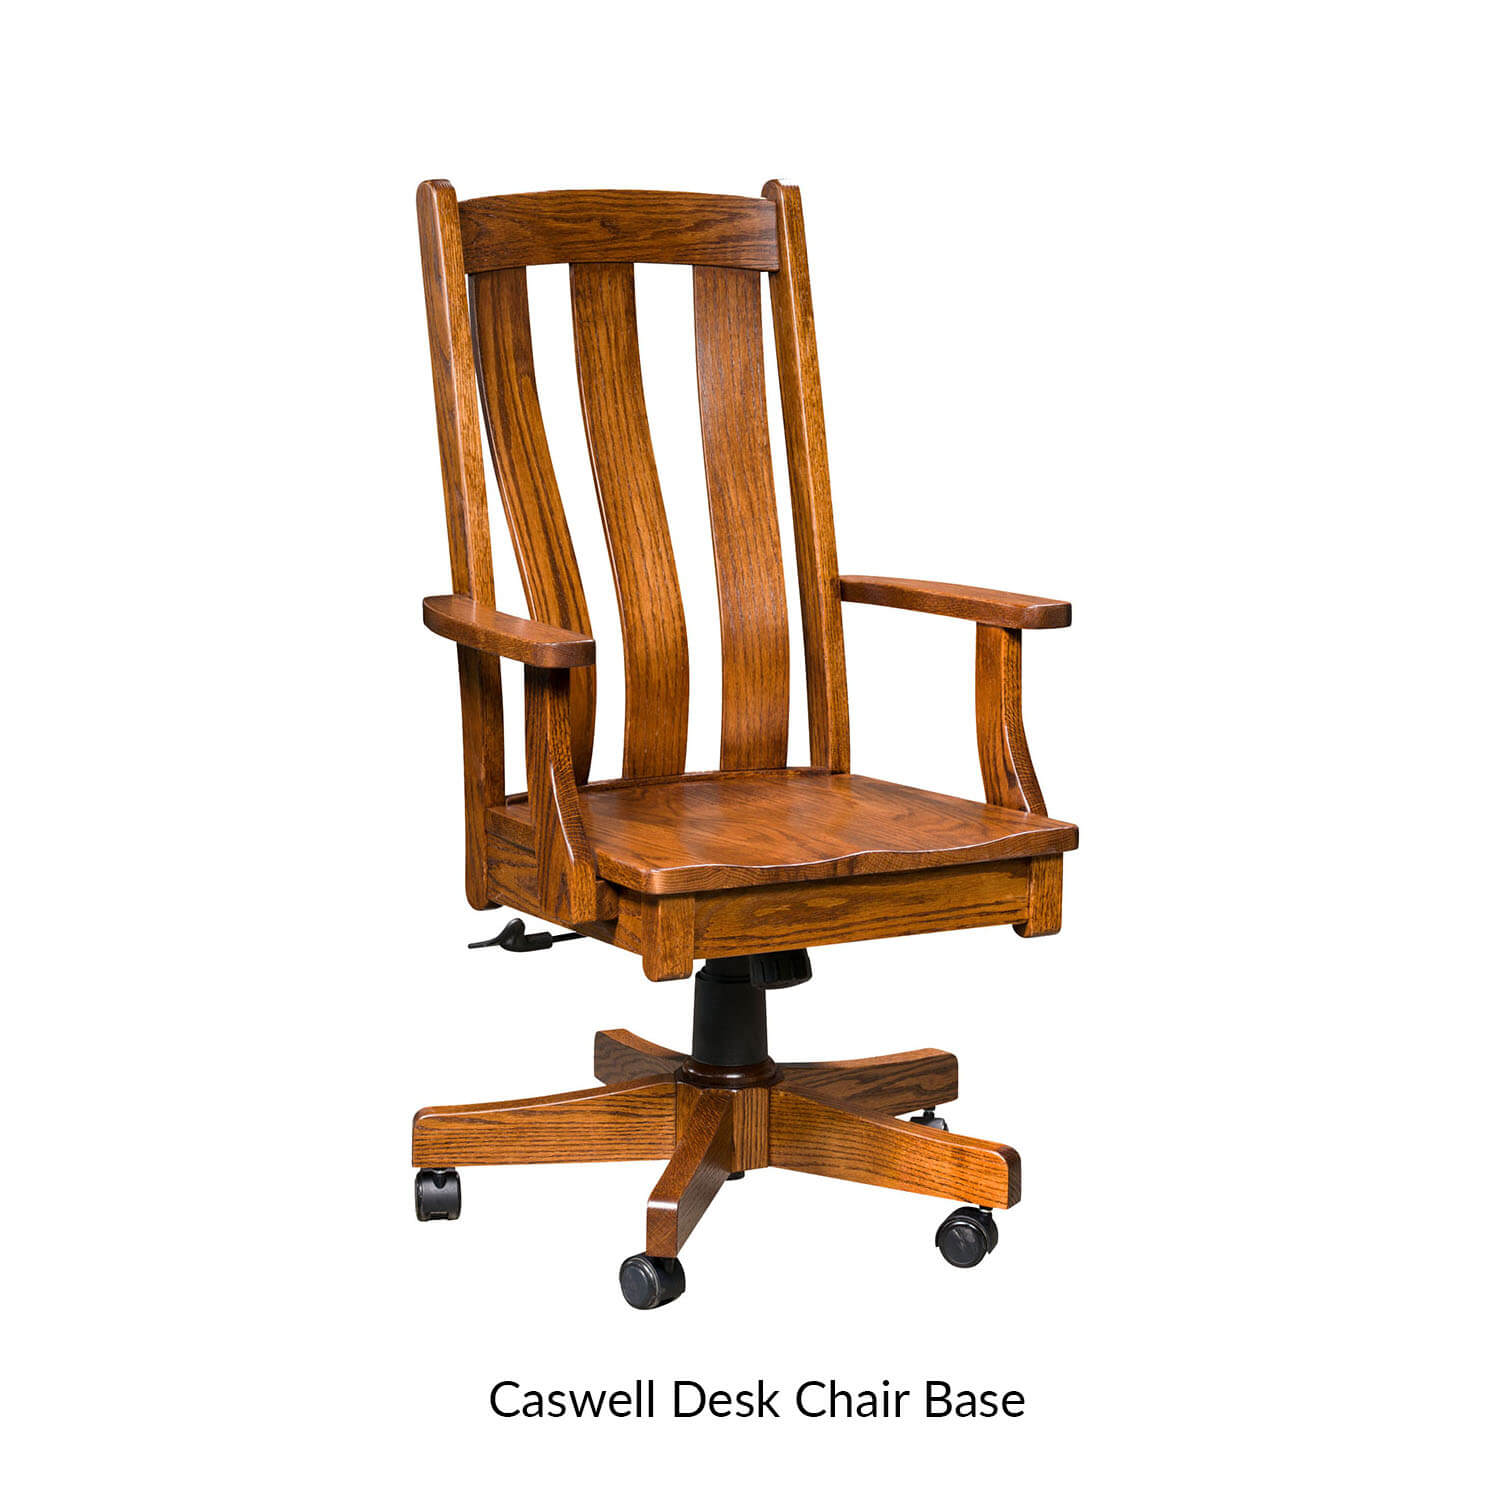 10.1-caswell-desk-chair-base.jpg